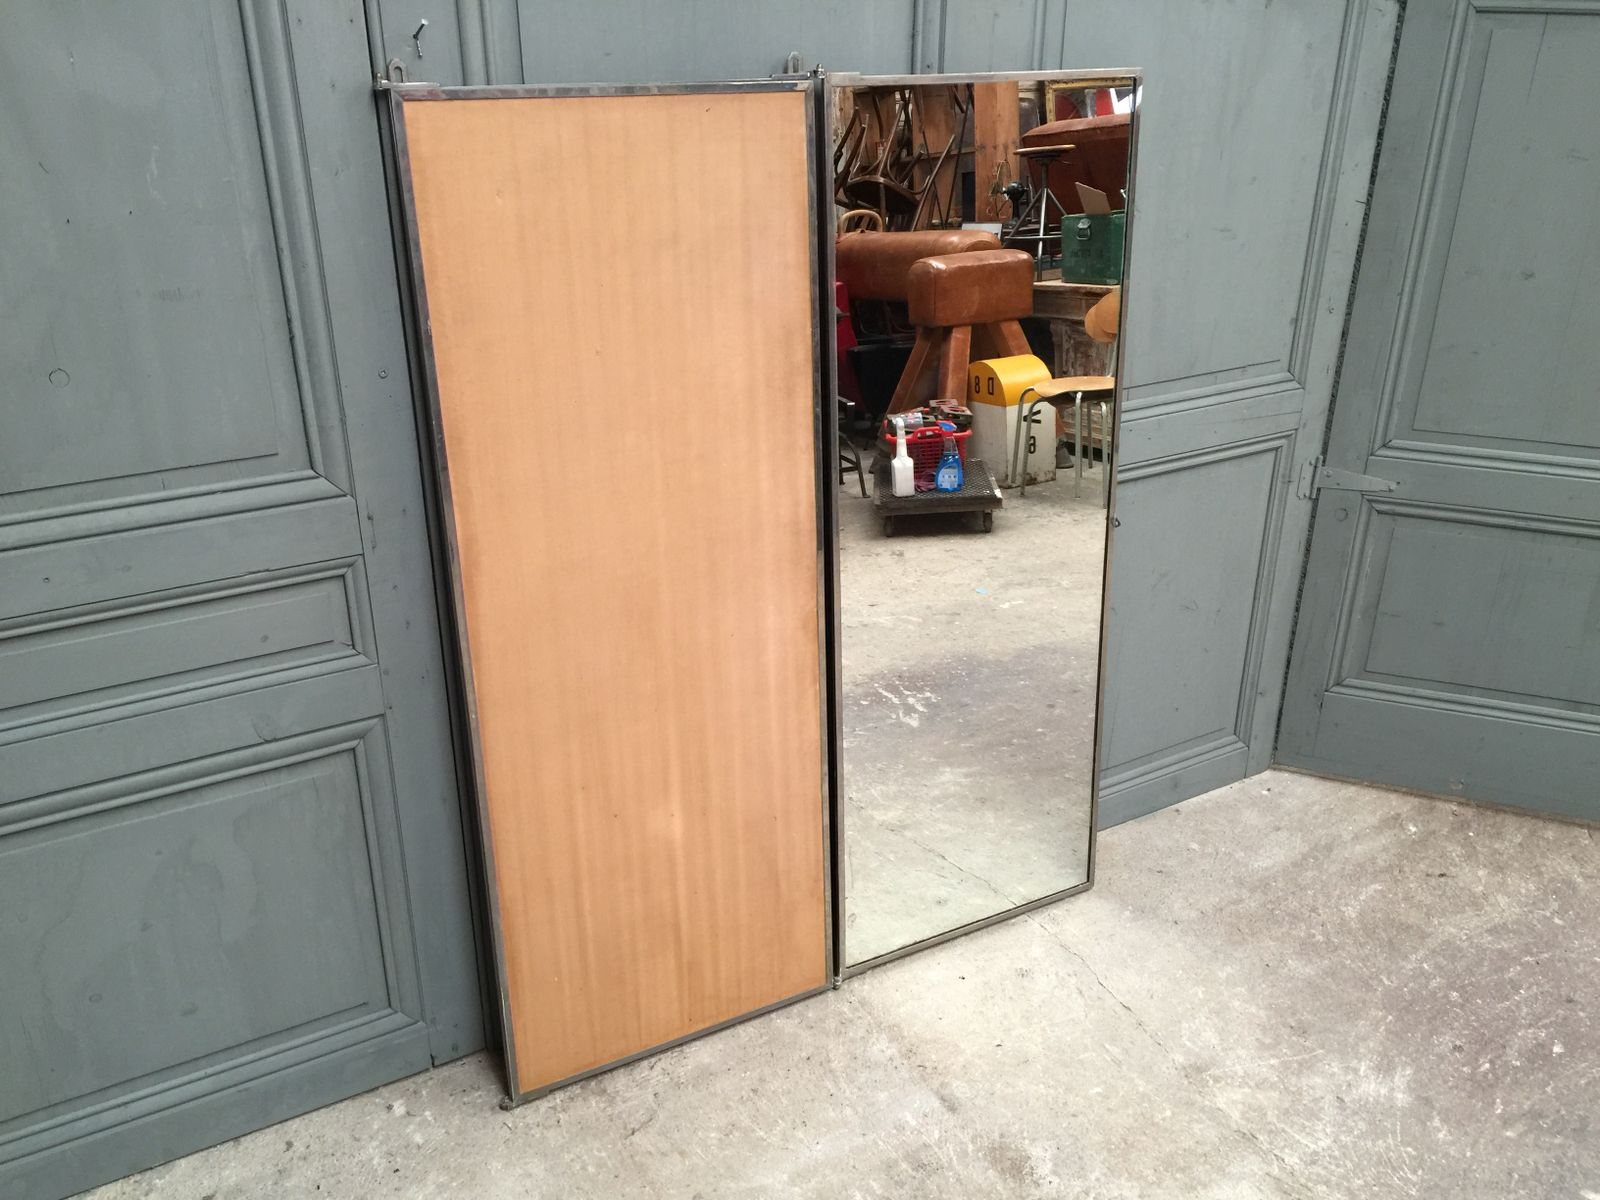 Miroir vintage tryptique de brot france 1920s en vente for Miroir brot paris